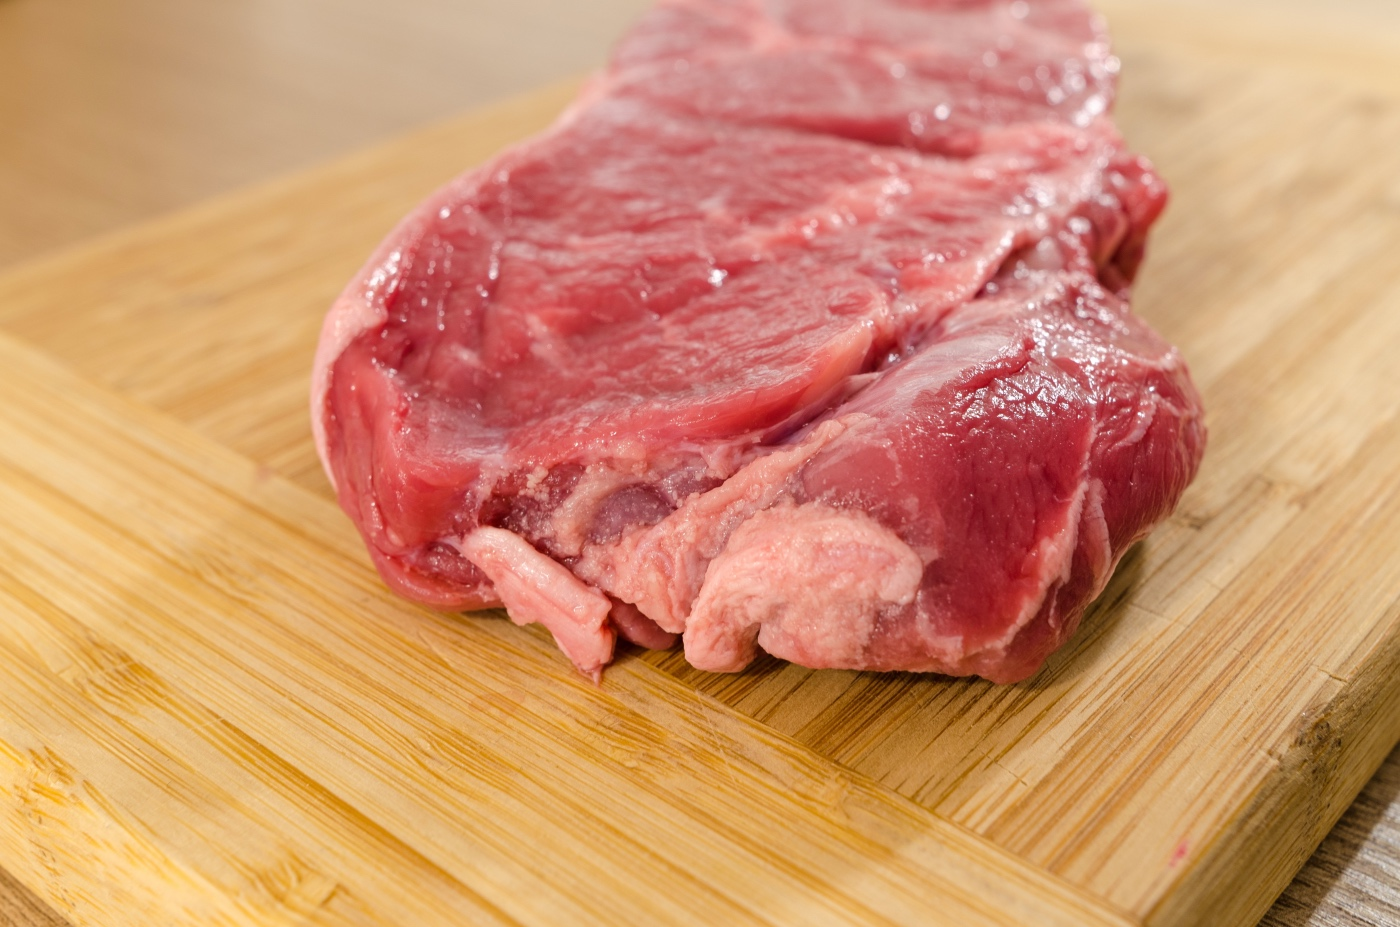 raw steak before simple garlic steak marinade is added pop shop america